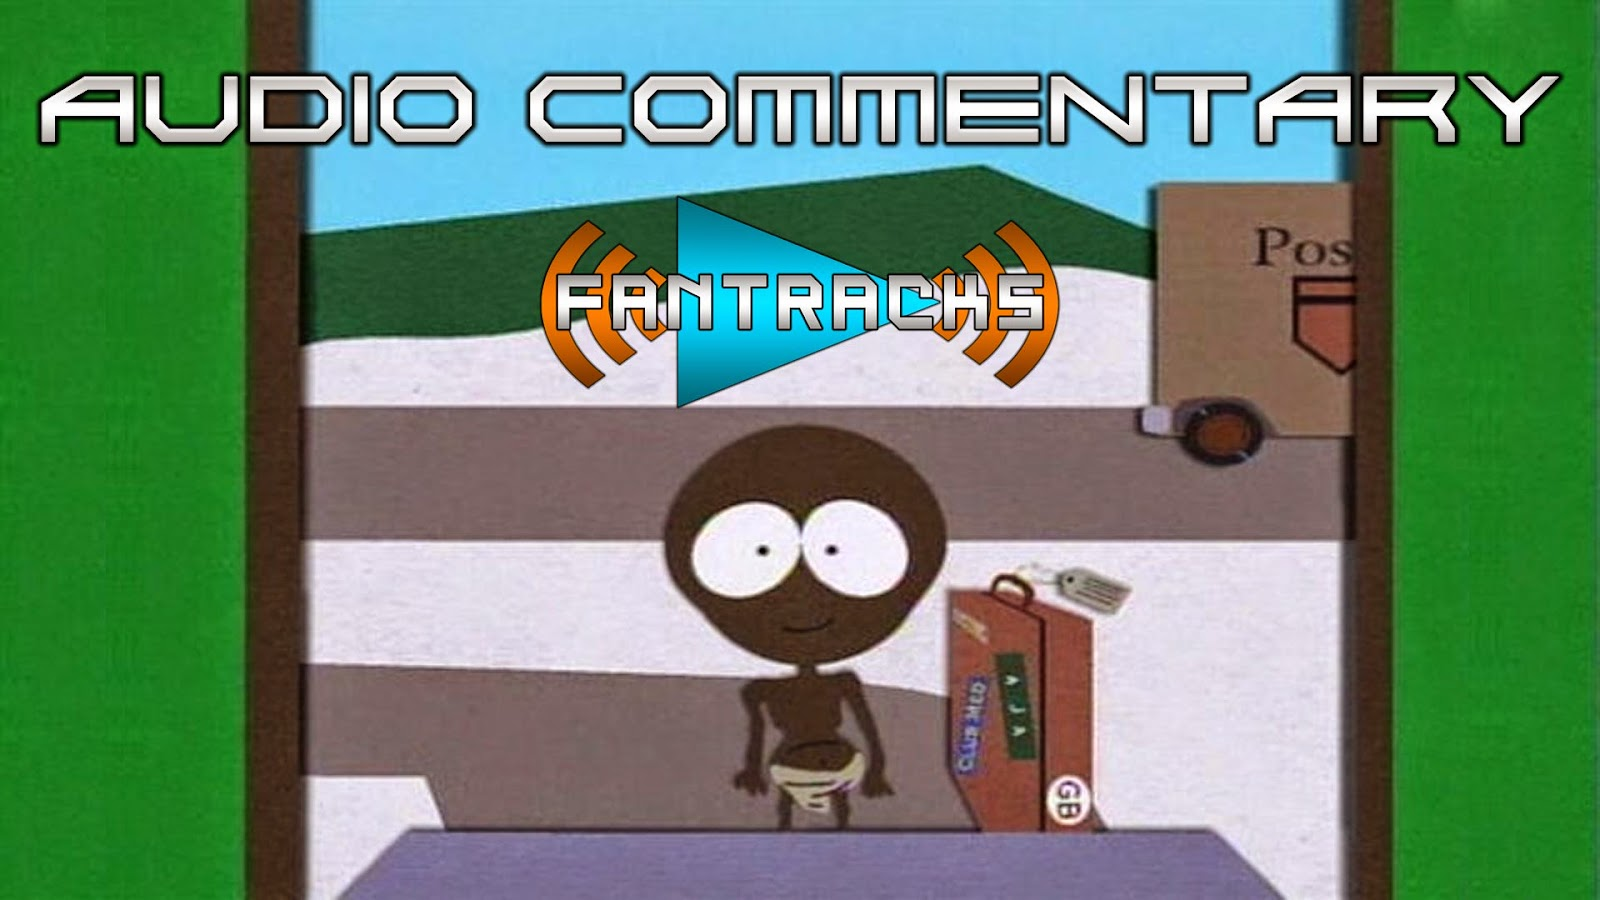 FanTracks South Park audio commentary Starvin Marvin Thanksgiving